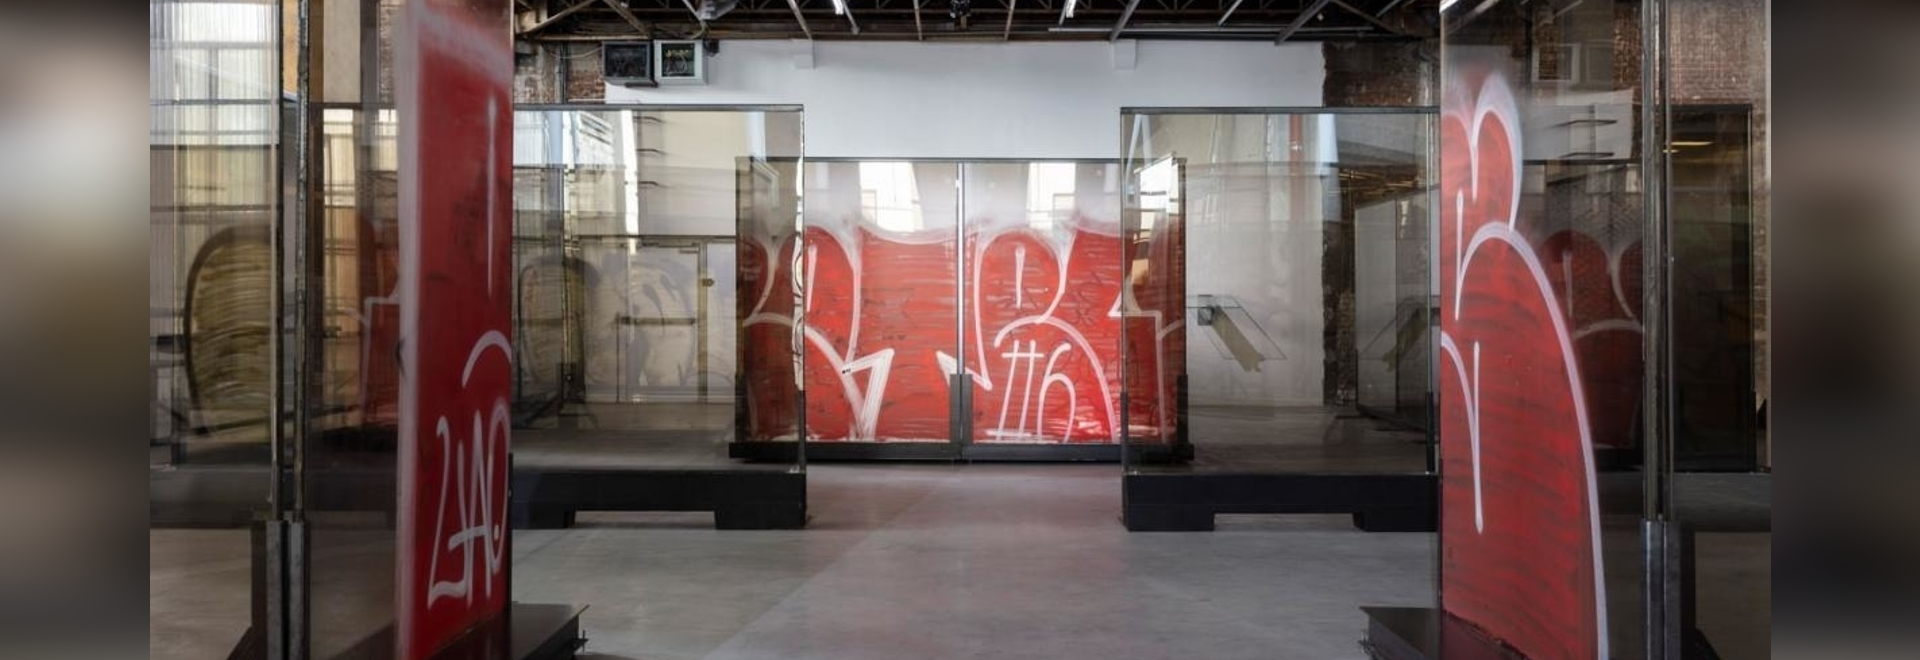 Anne Imhof, 'Natures Mortes' (2021), exhibition view, Palais de Tokyo, Paris. Photography: Andrea Rossetti. Courtesy of the artist, Galerie Buchholz and Sprüth Magers